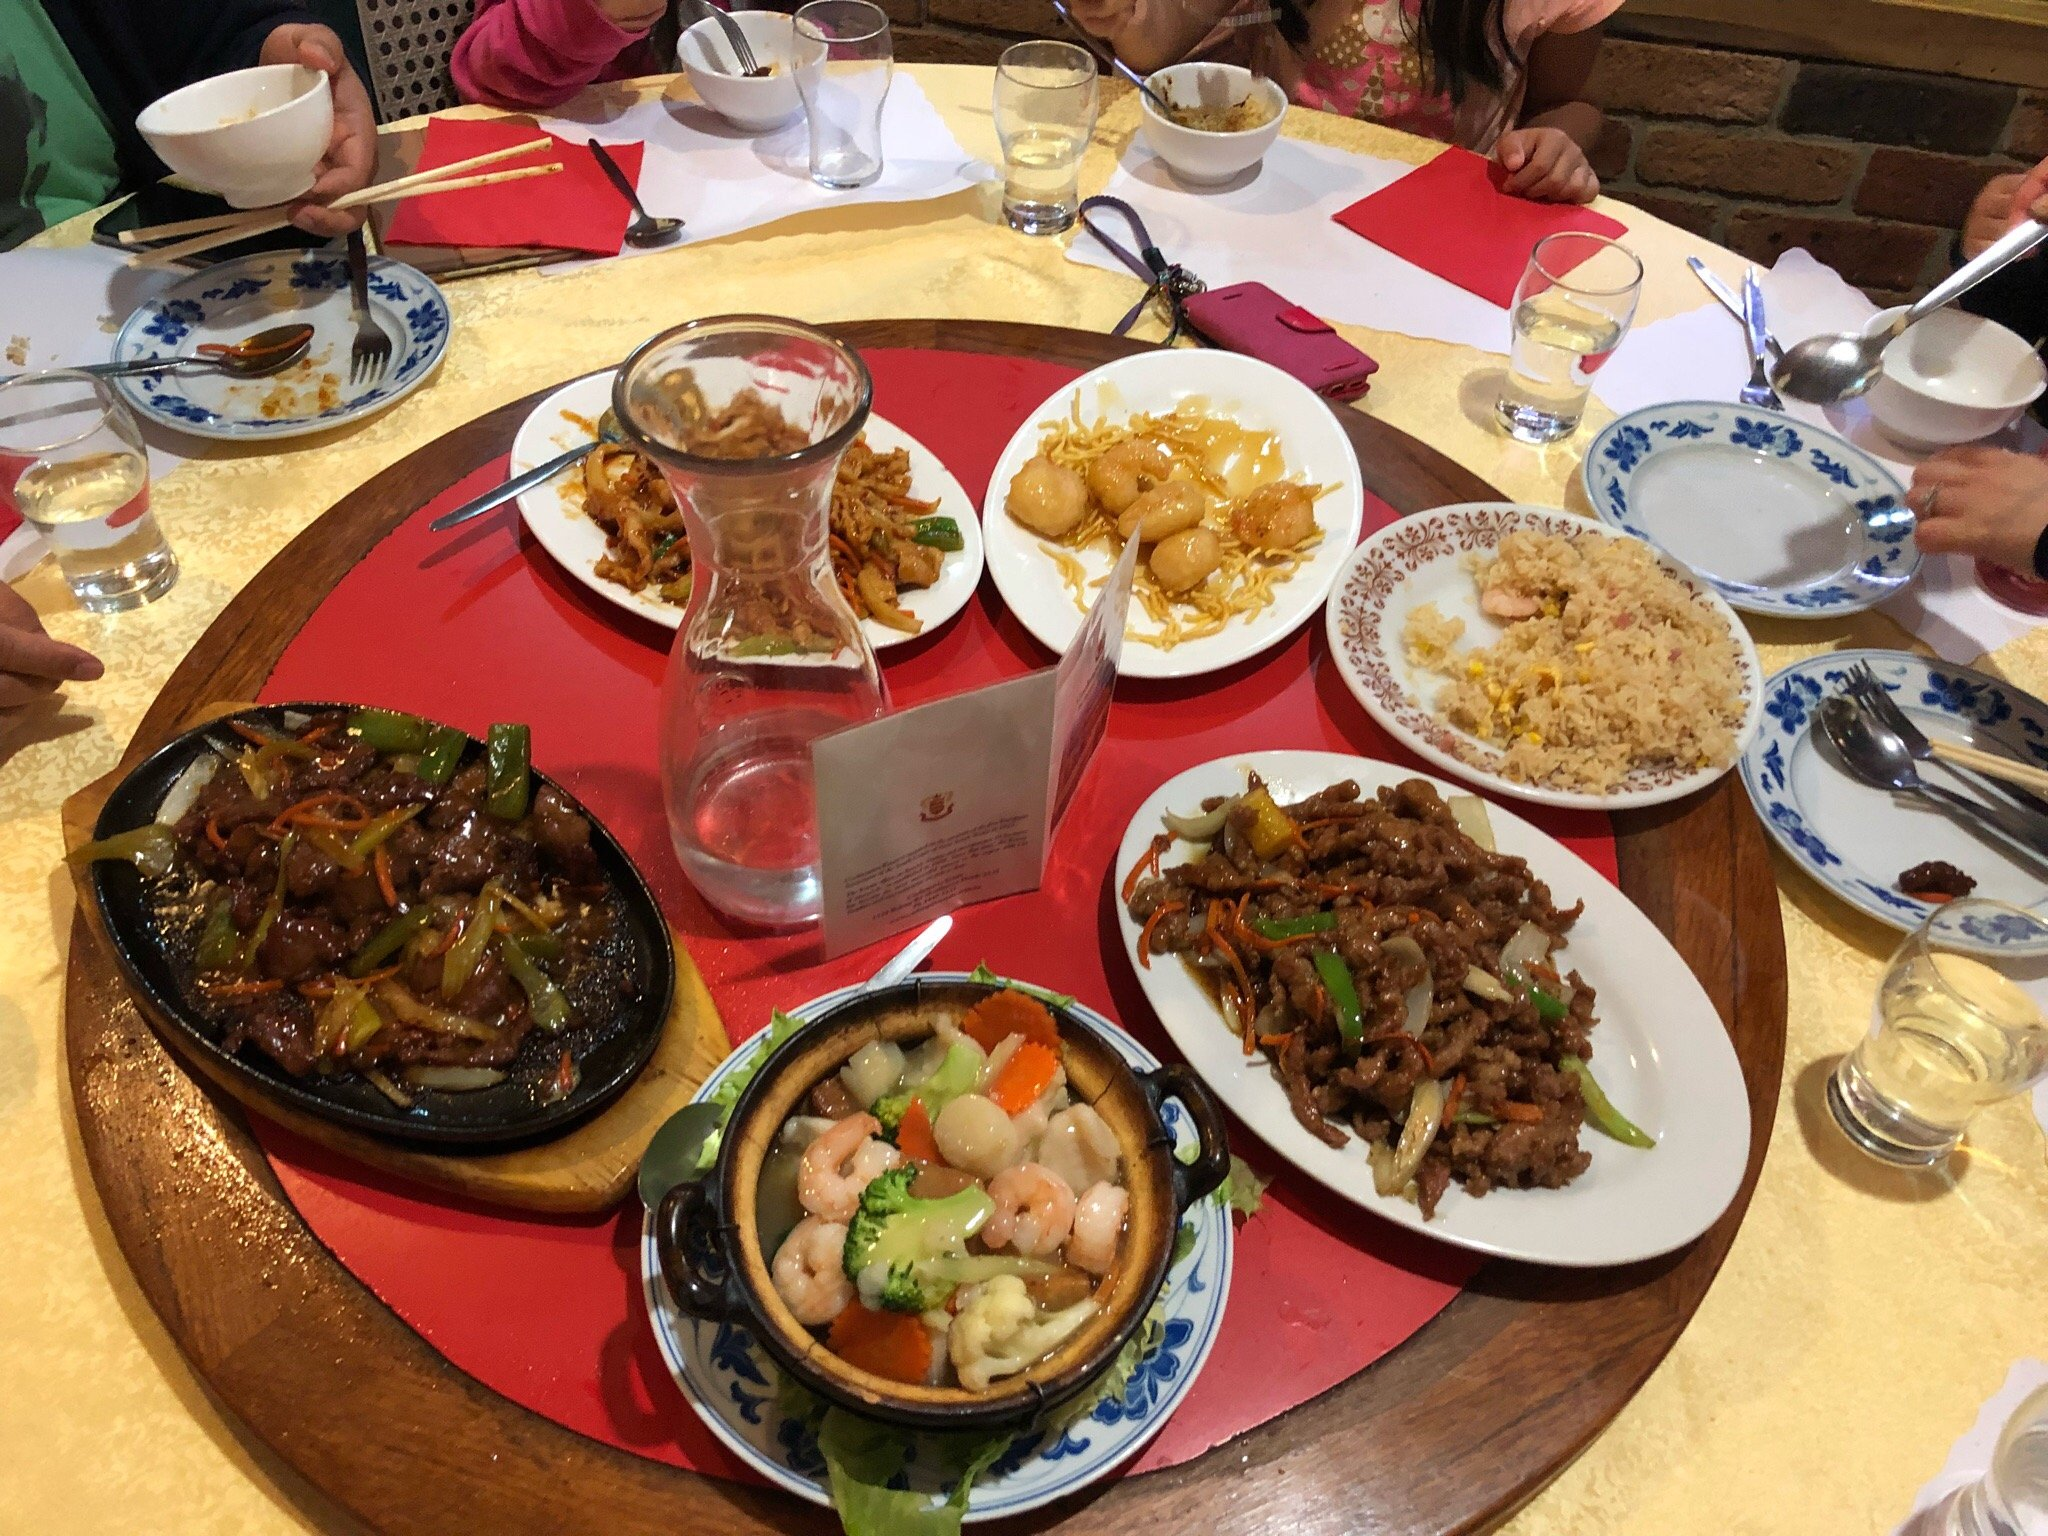 Panda Garden Chinese Restaurant | 79 North Street, Nowra, New South Wales 2541 | +61 2 4422 1268